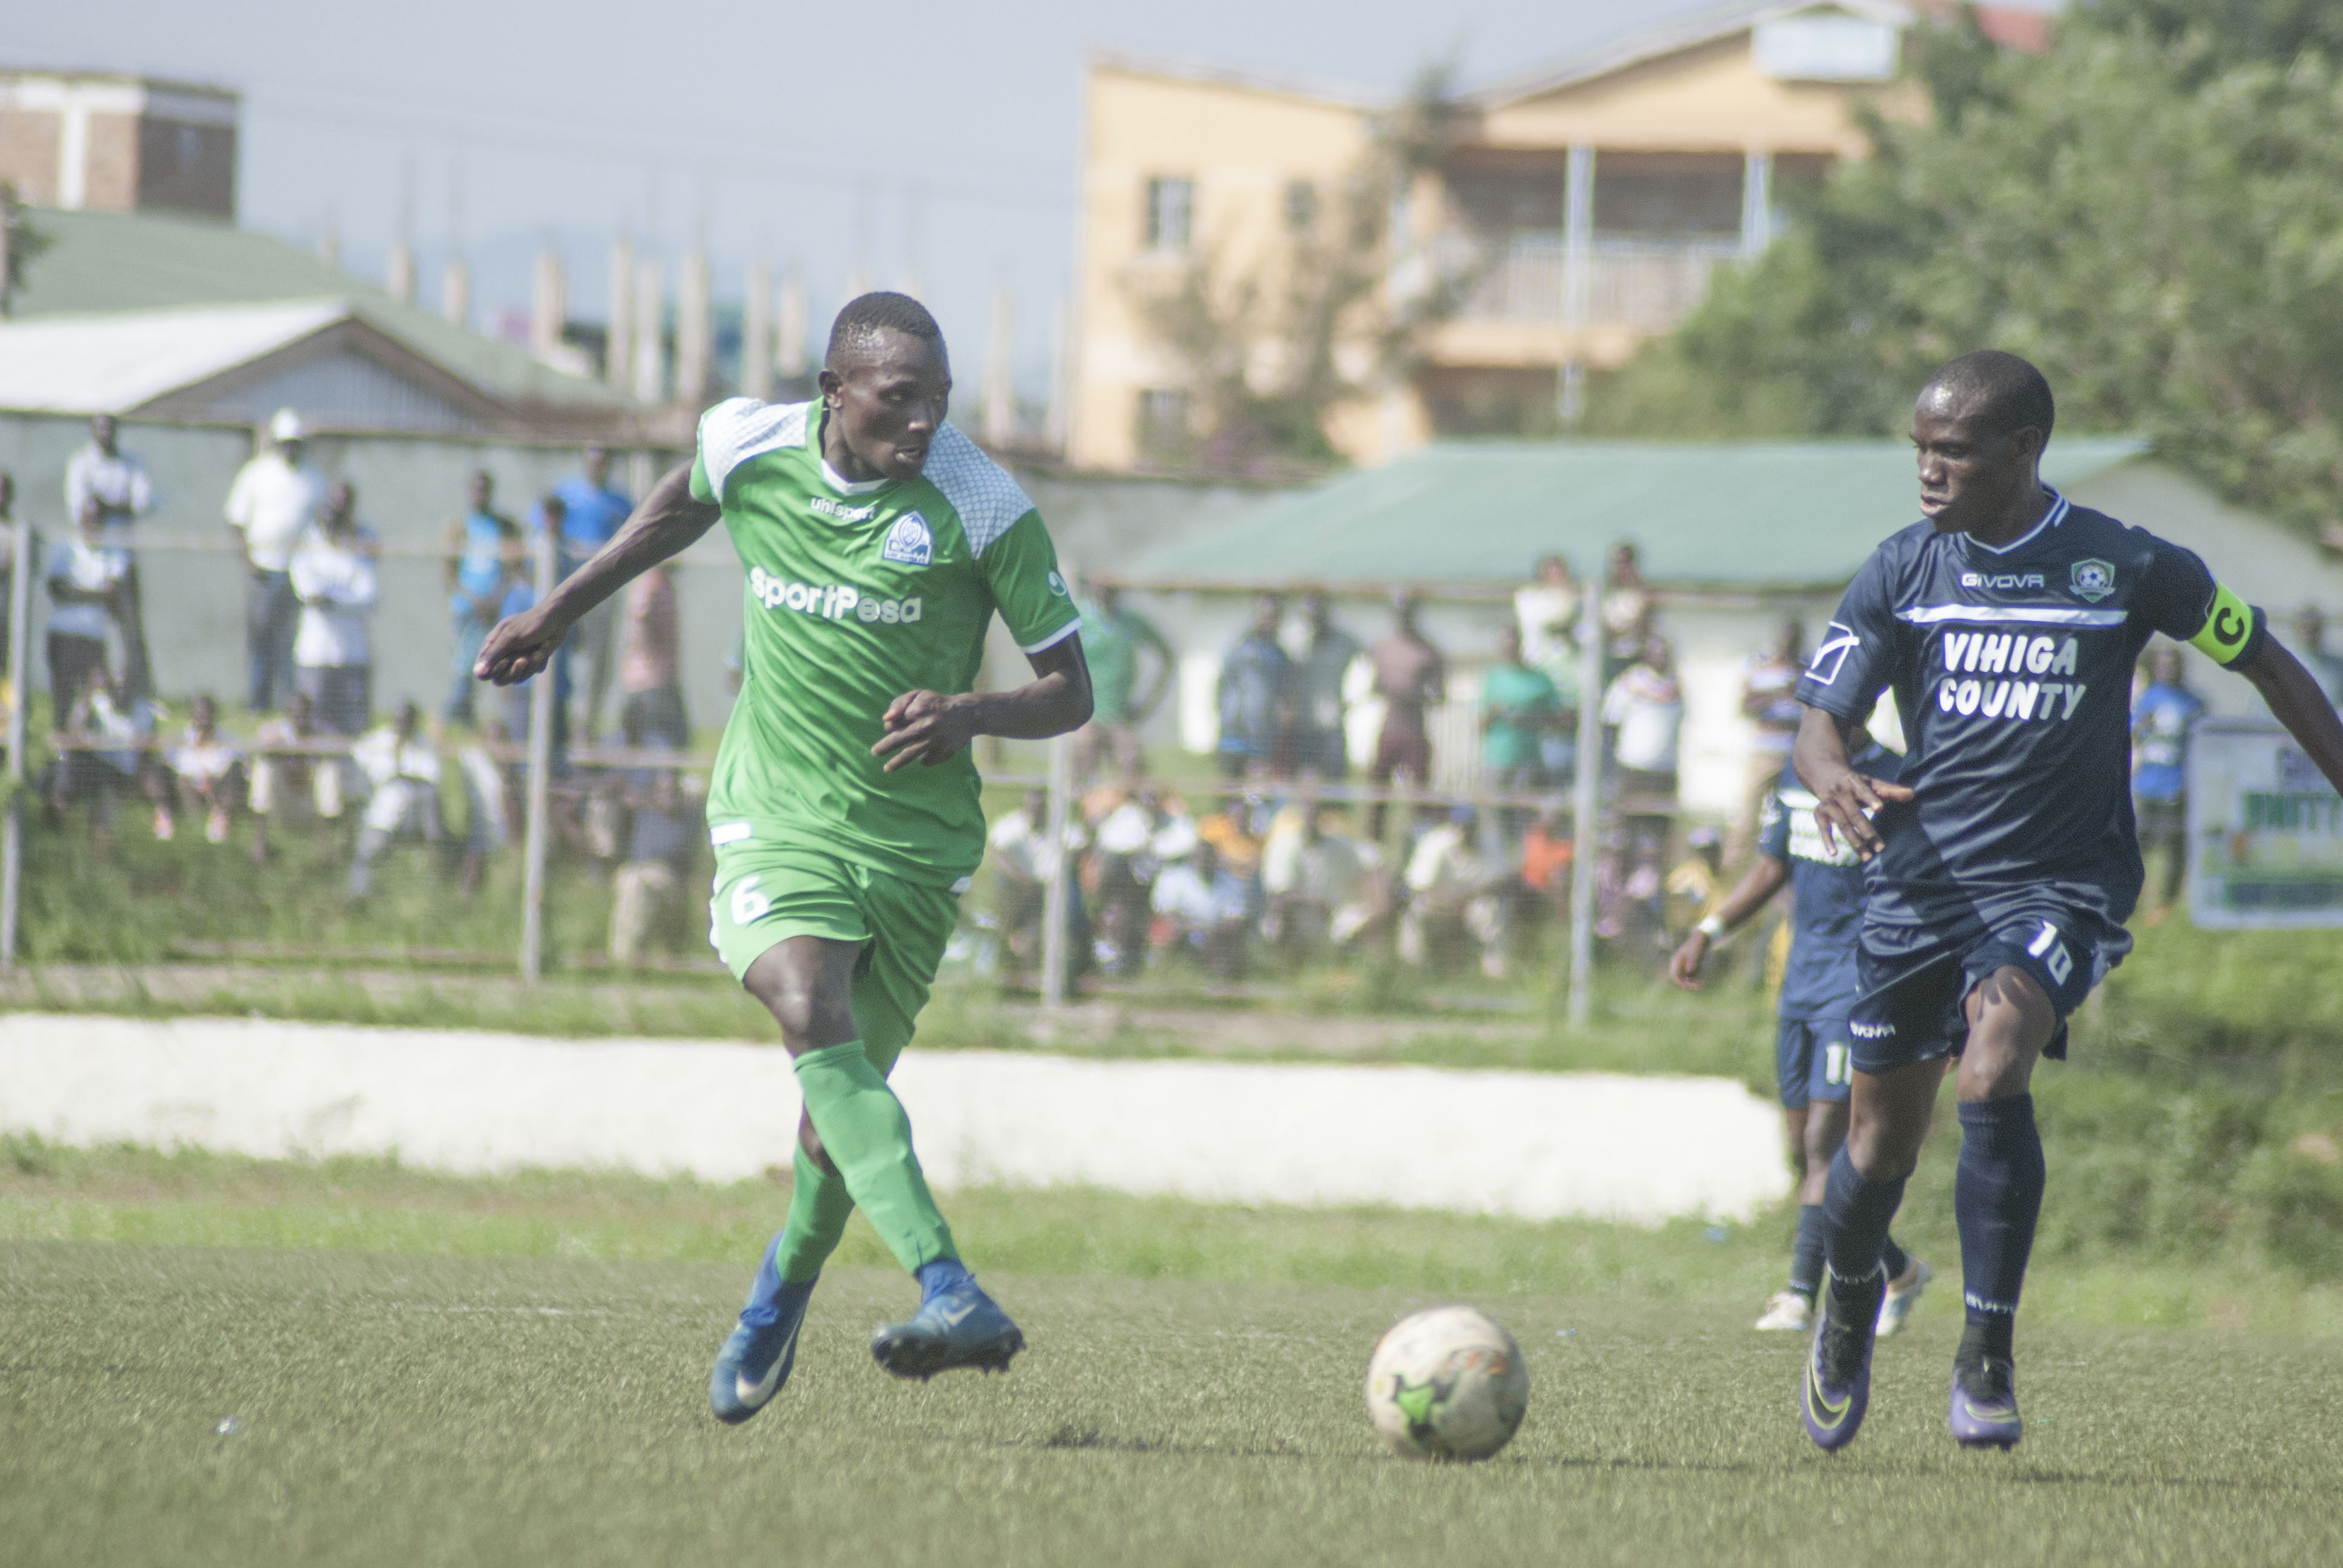 Veteran Okwemba released by Vihiga United